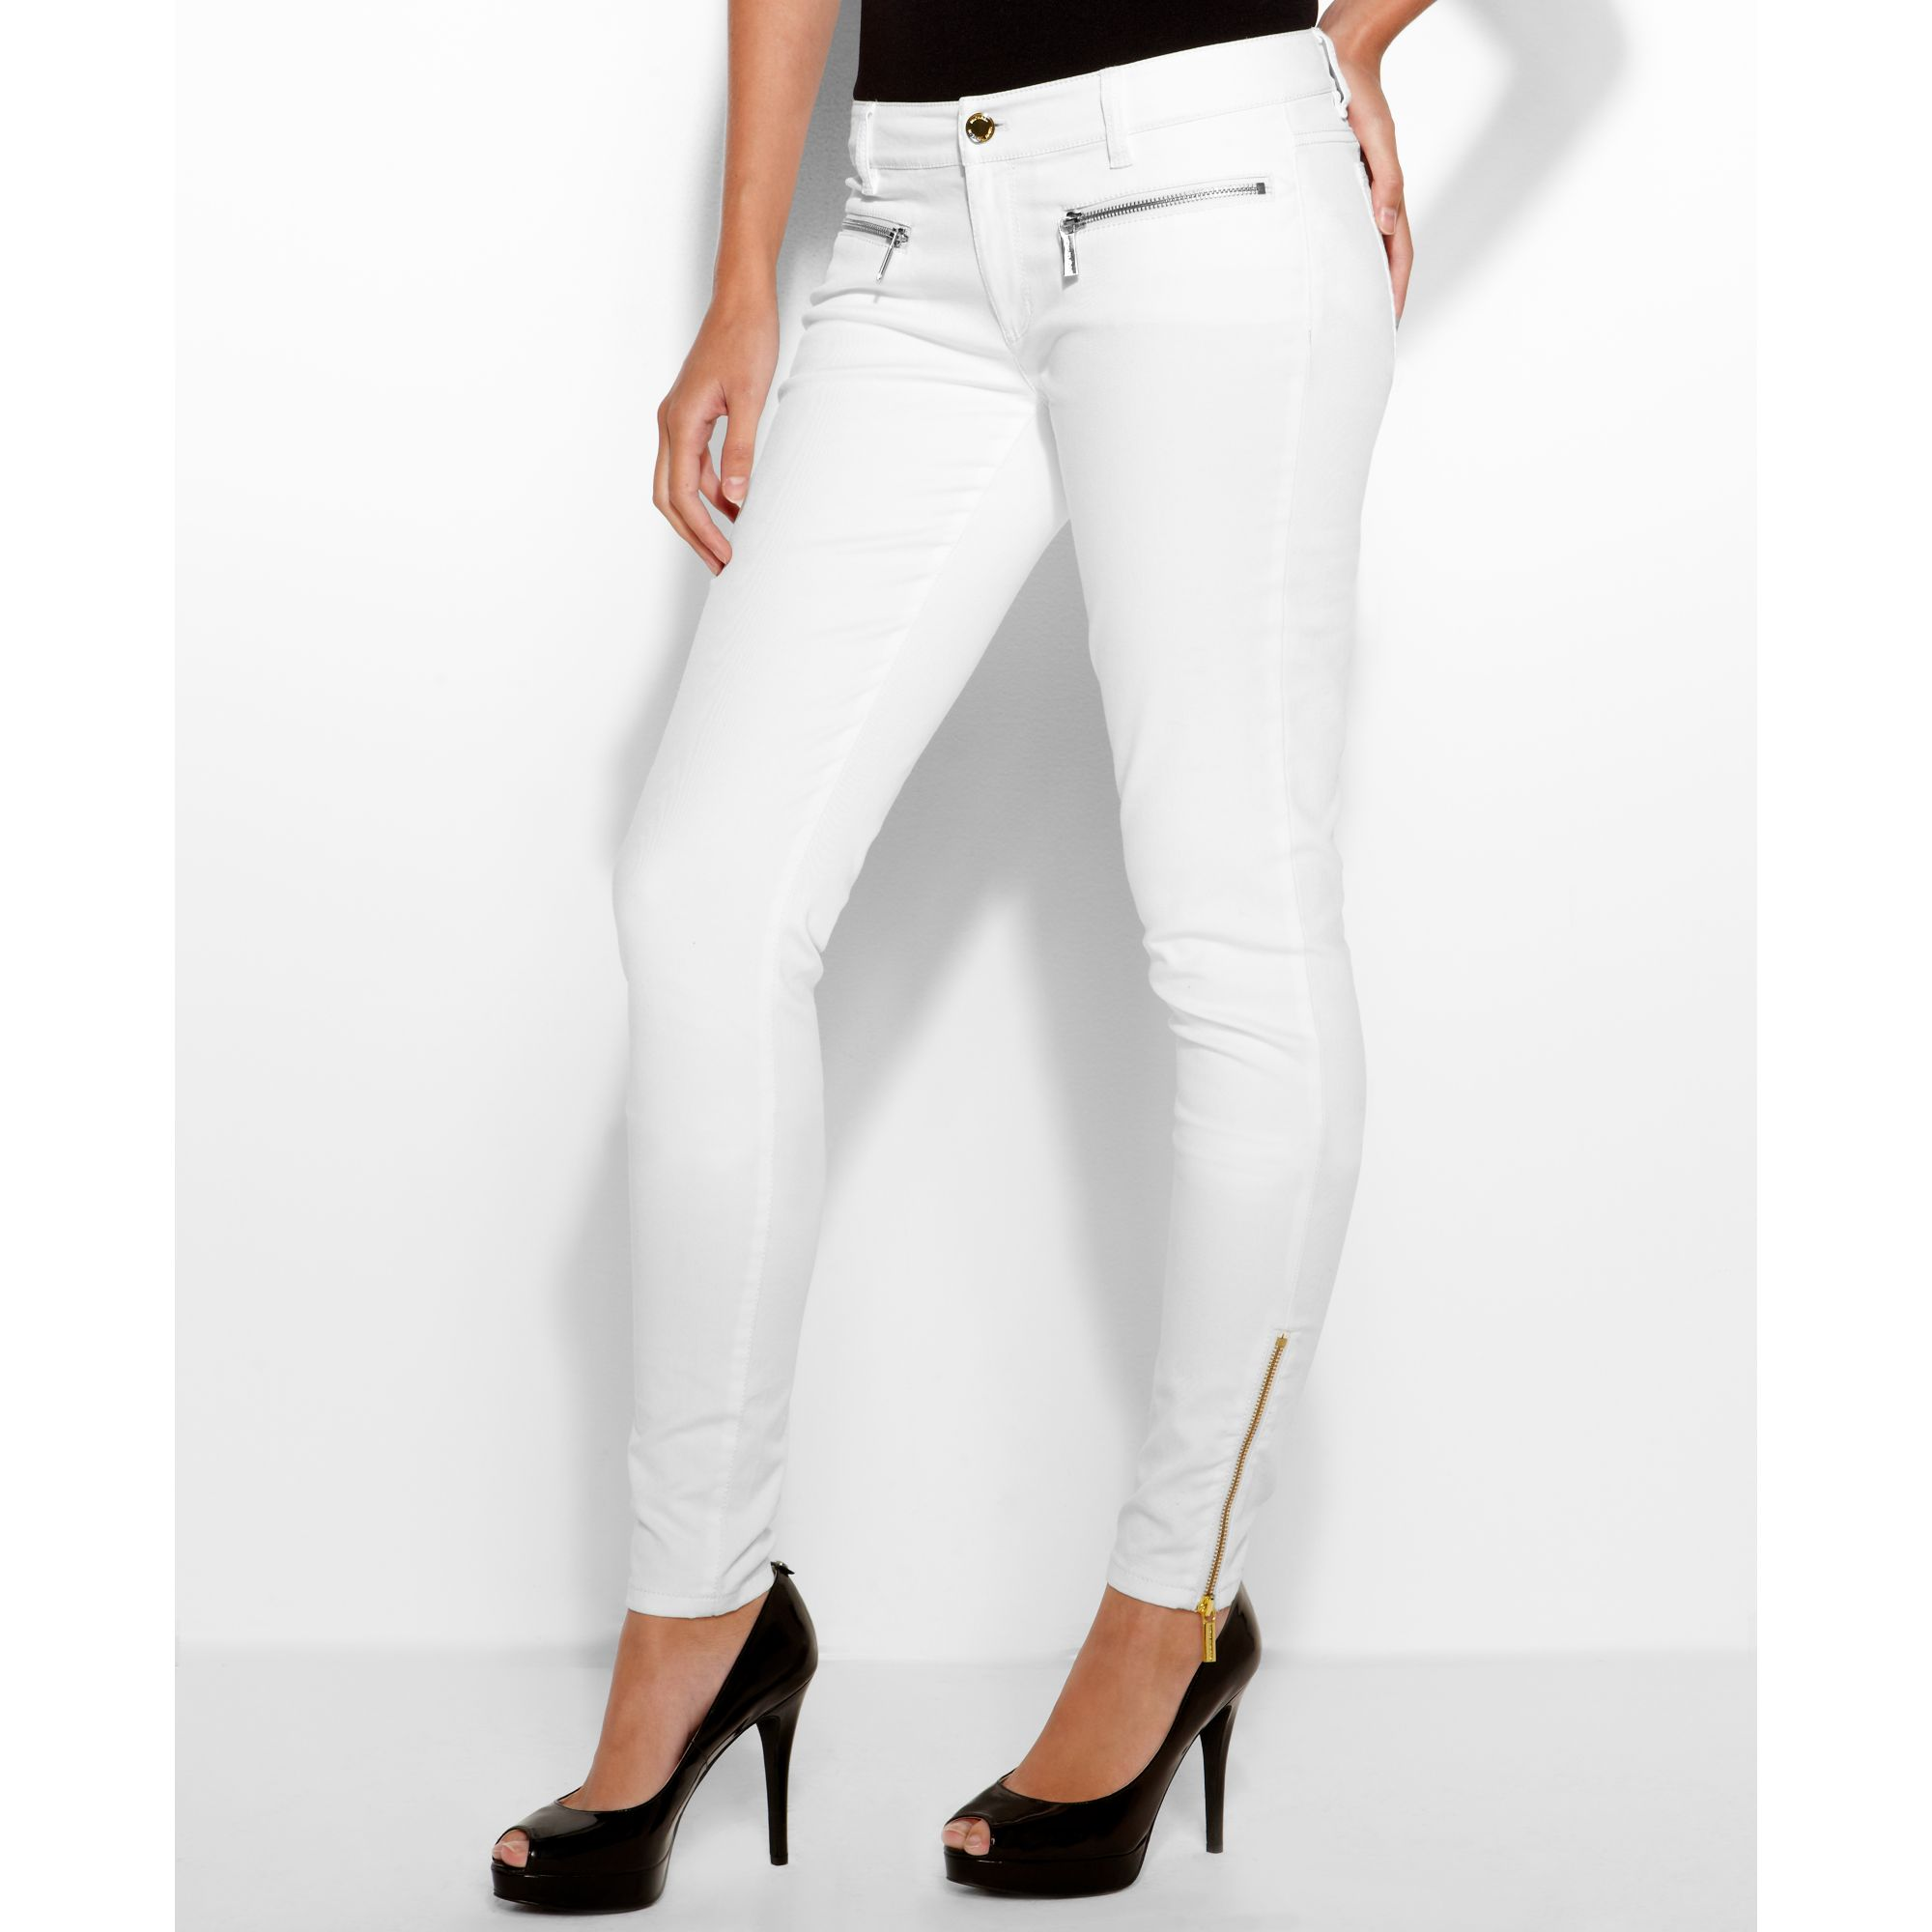 Michael kors Colored Wash Zipper Skinny Jeans in White | Lyst